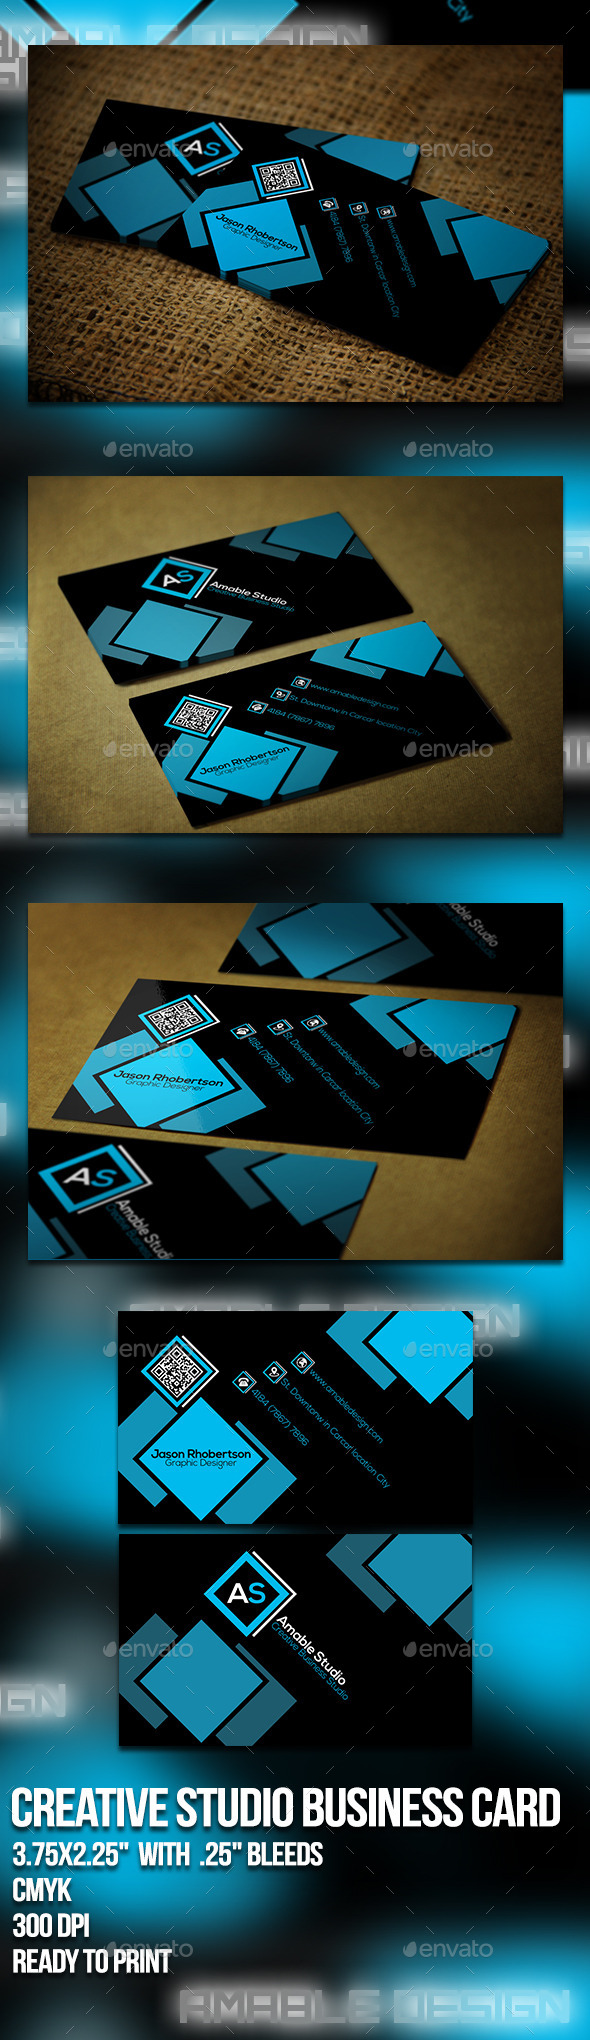 GraphicRiver Creative Studio Business Card 10063593